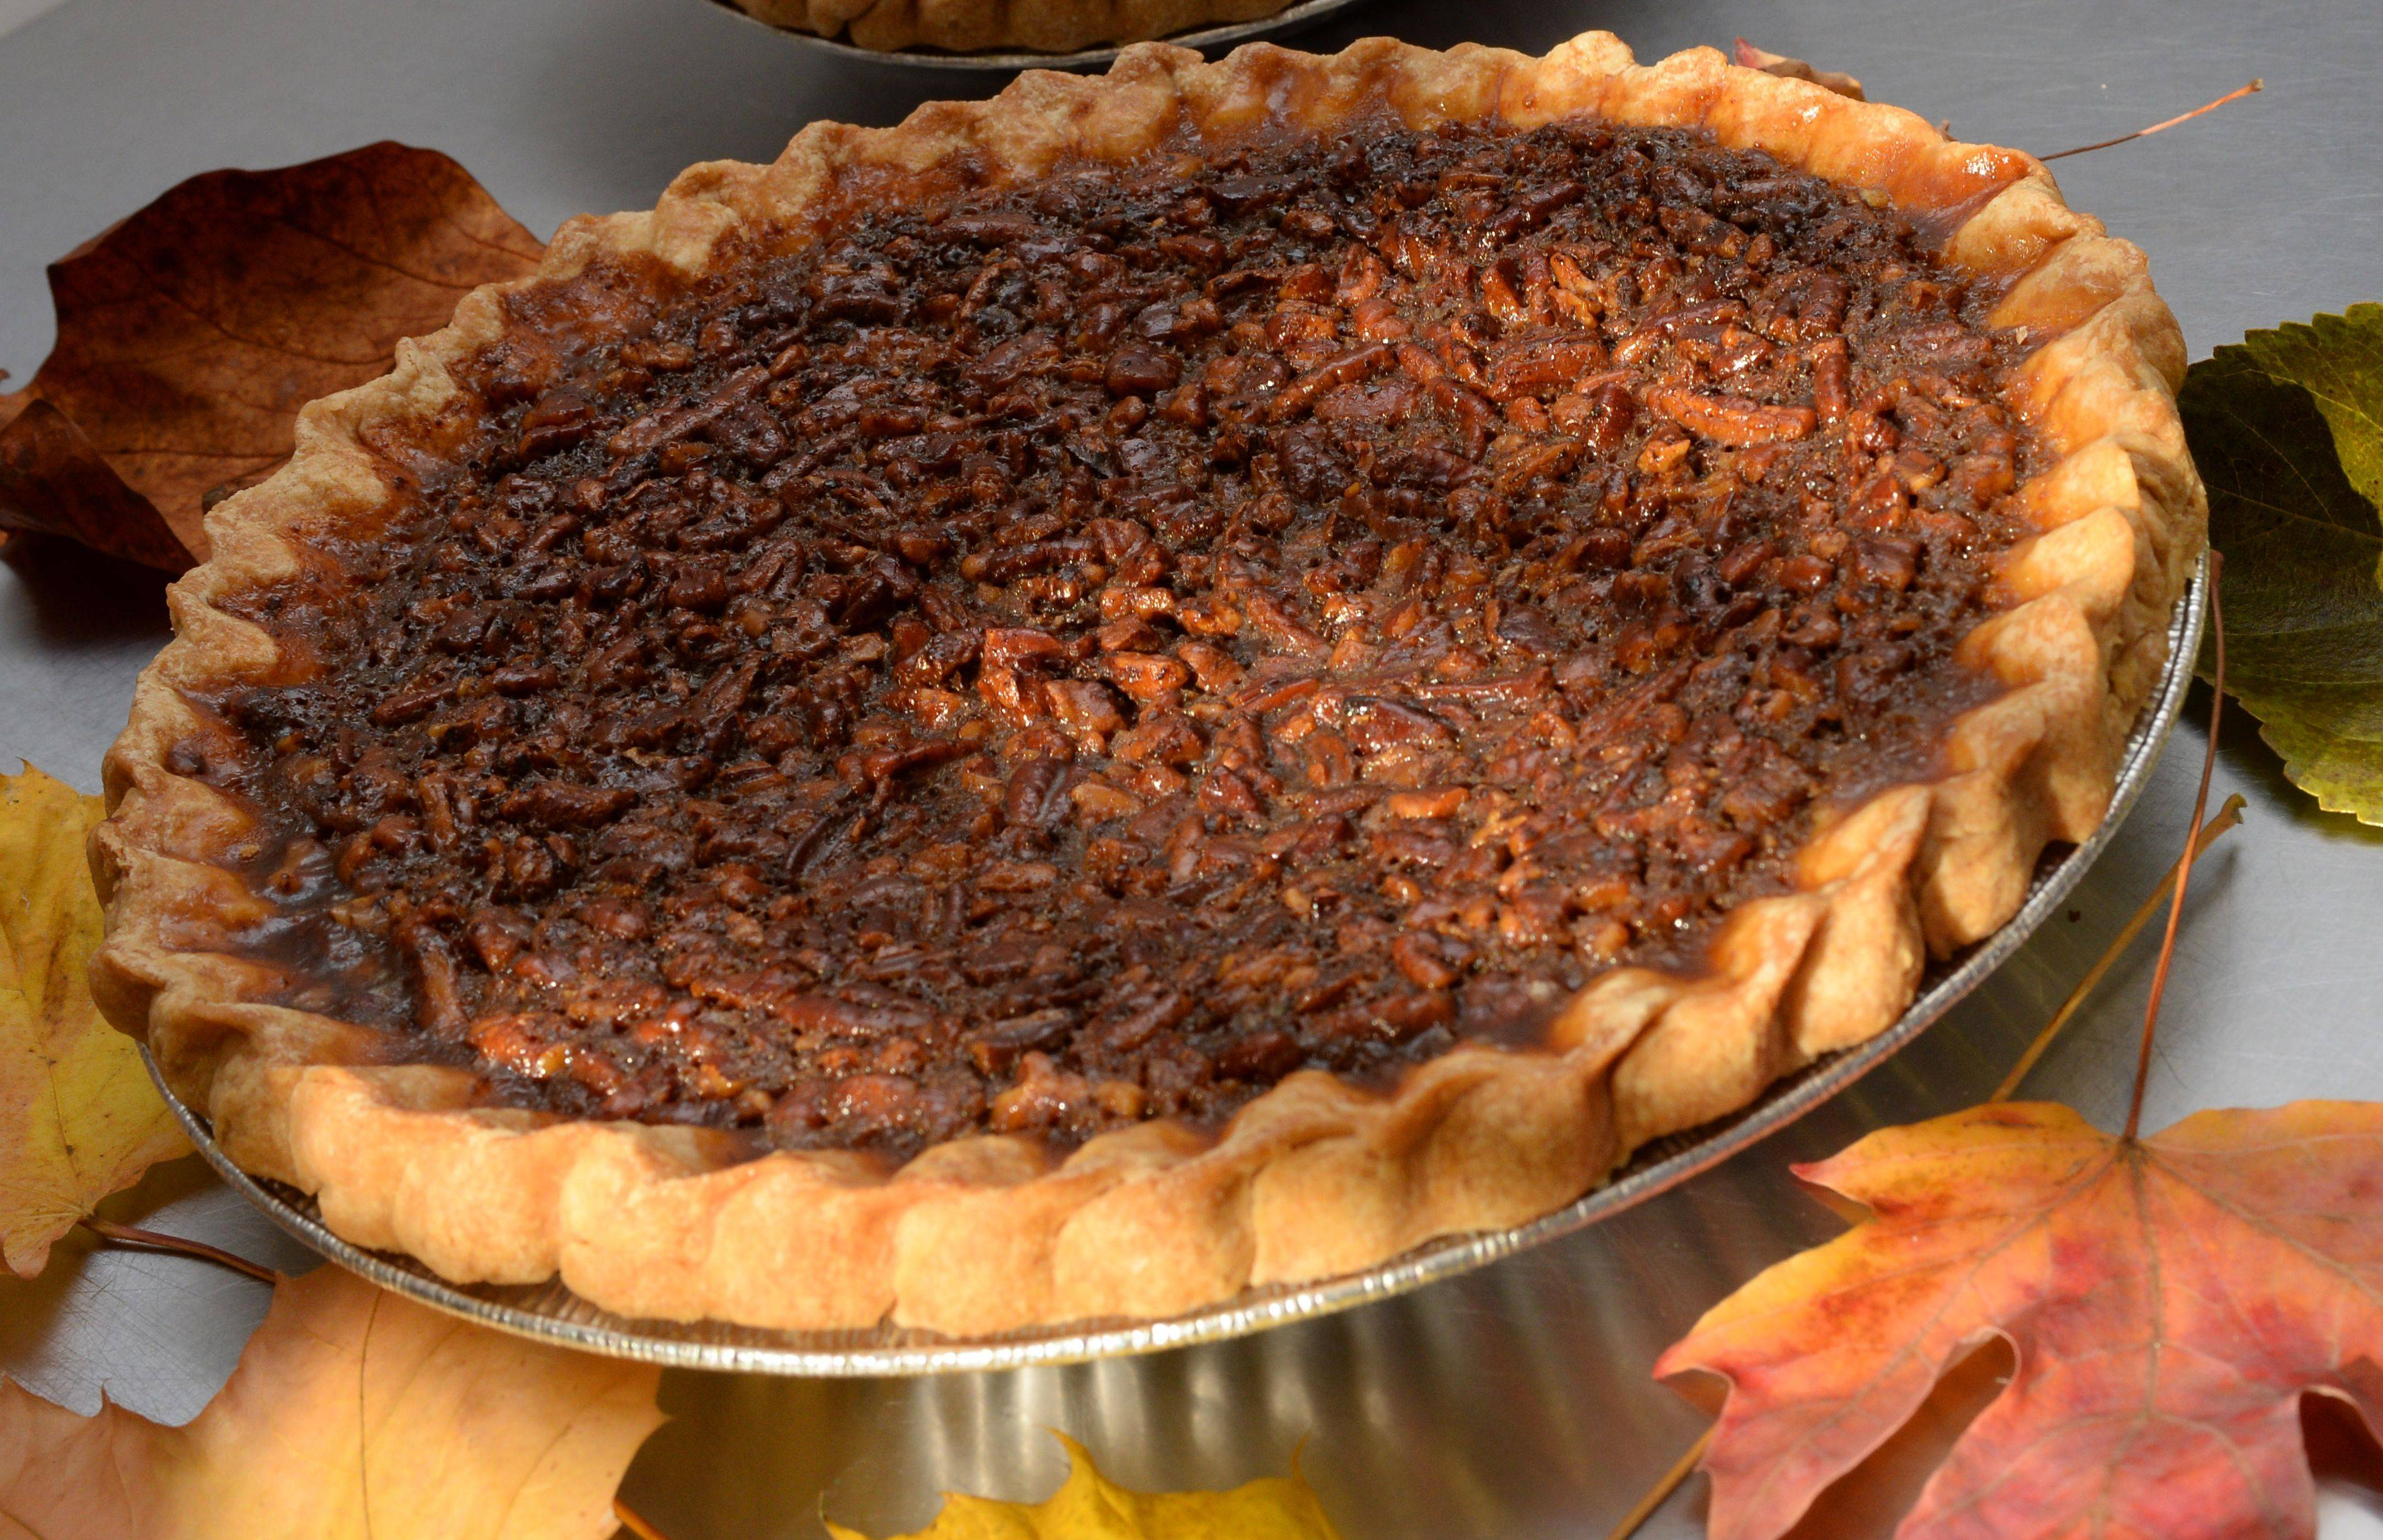 Donnalyn Vojta's pecan pie that she baked in her store Crust'em Sweets store in Palatine.